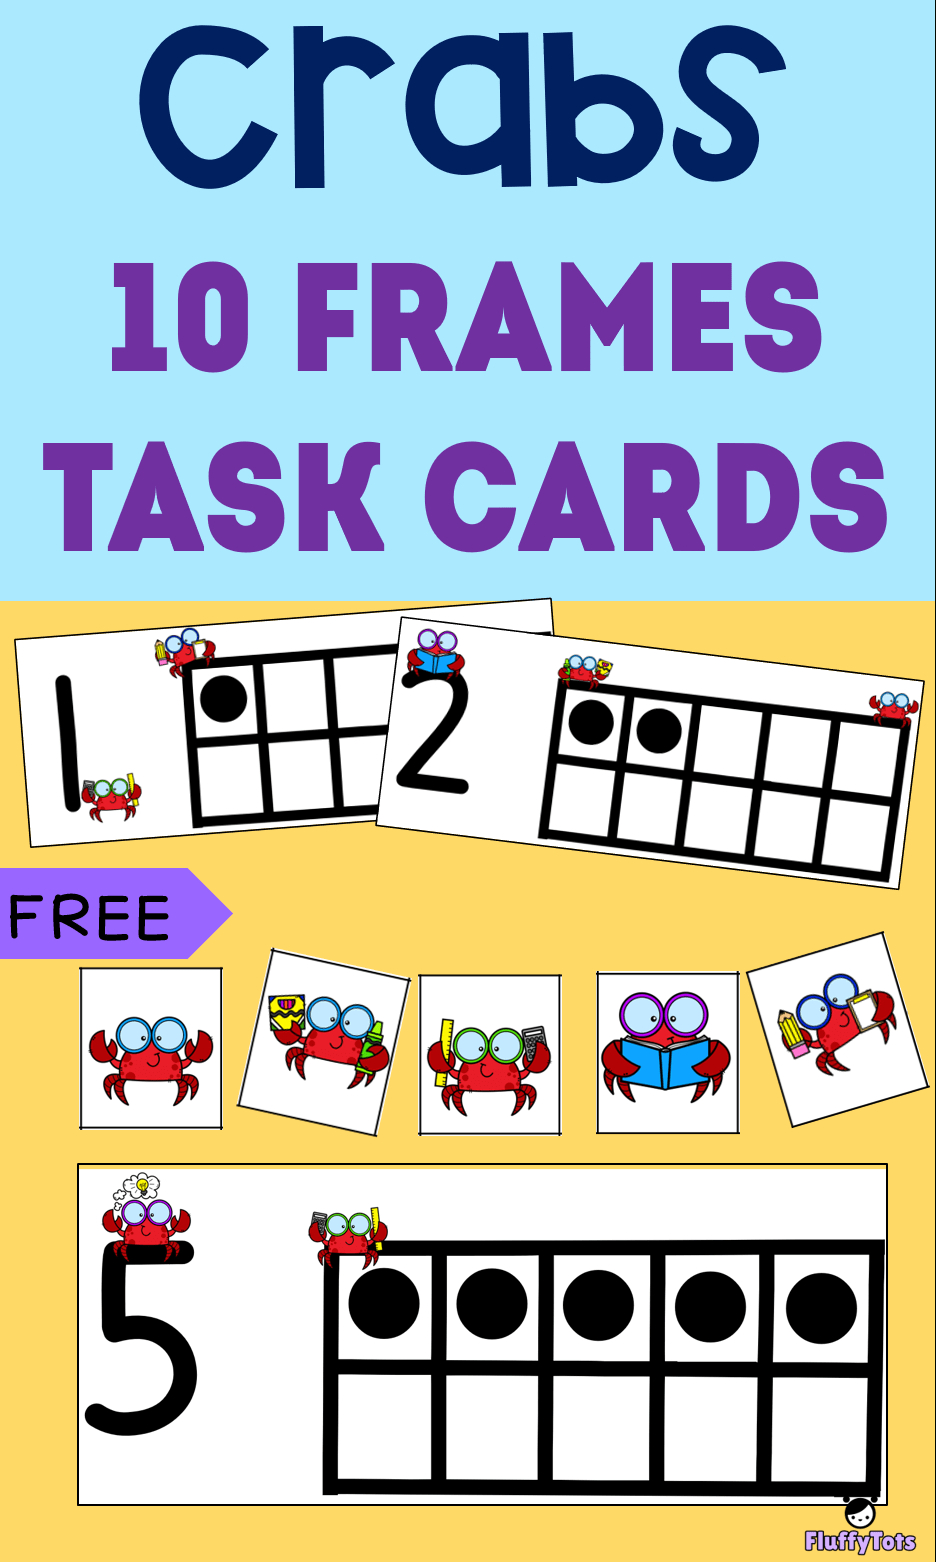 Free Crabs 10-Frames Task Cards : Perfect For Preschoolers And - Free Printable Kindergarten Task Cards